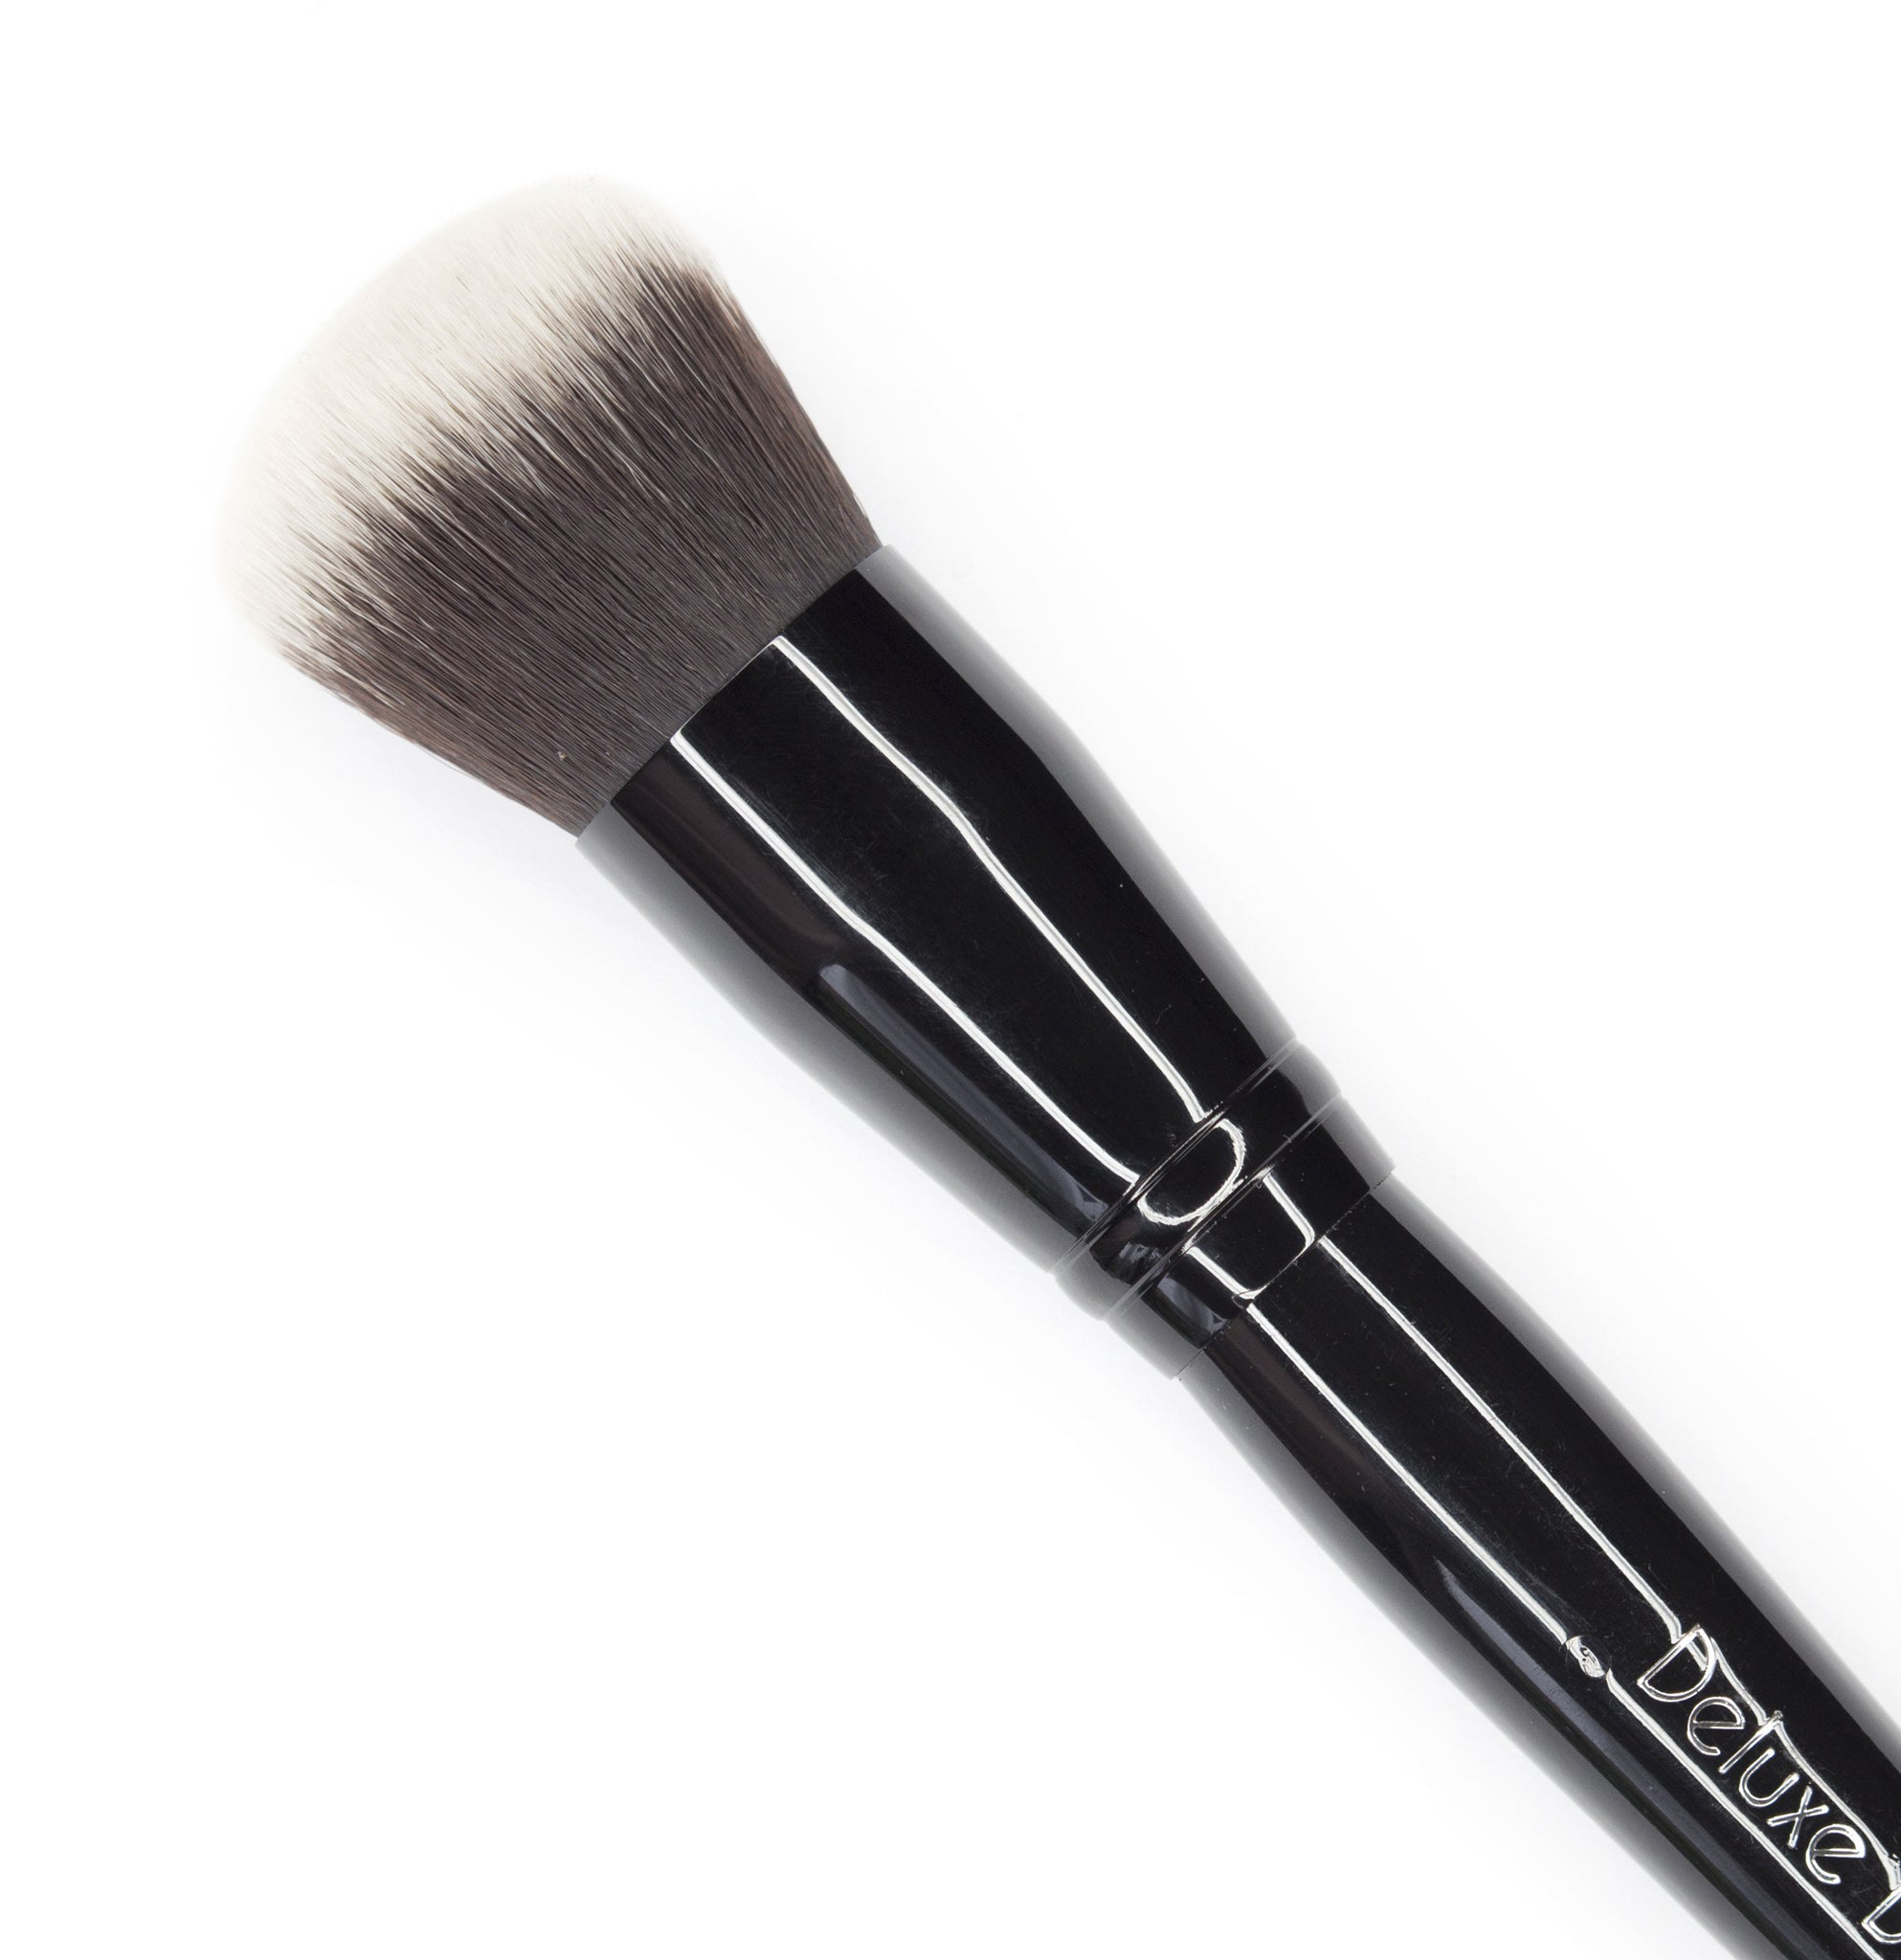 Deluxe Buff Brush